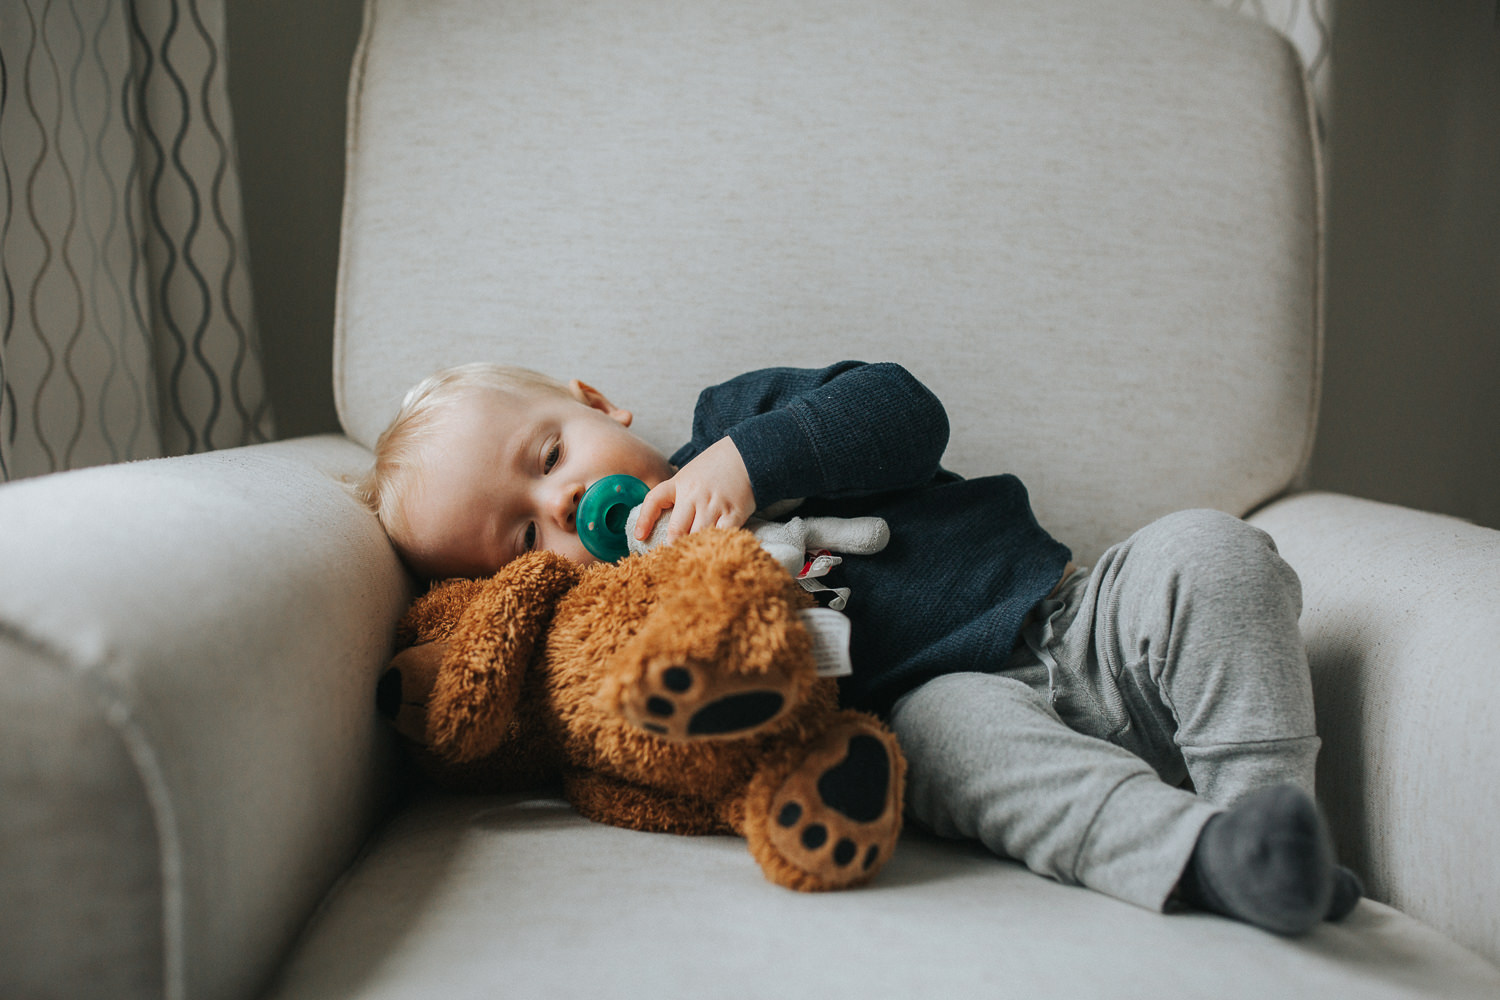 1 year old toddler boy lying on chair with stuffed bear - Newmarket lifestyle photography